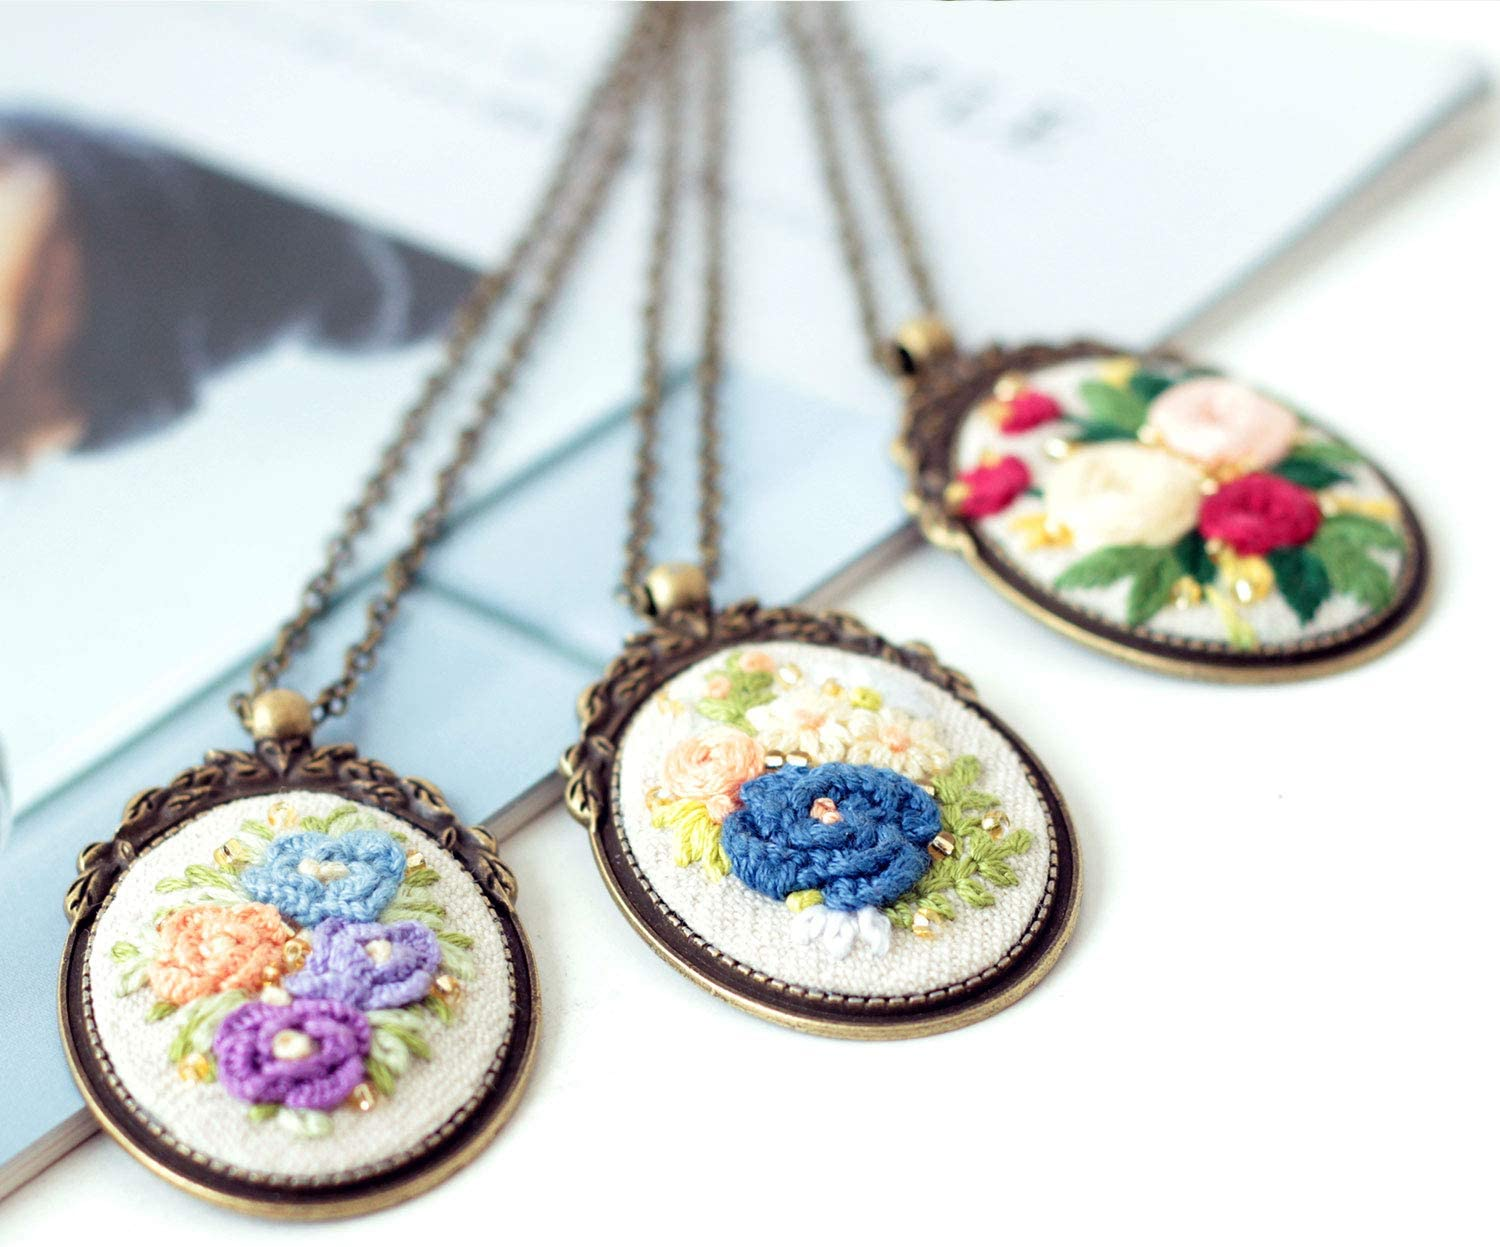 Brass Pedestal and Chain Embroidery Hoop Silver Beads B Akacraft Retro Necklace Series Embroidery Starter Kit Canvas Cloth with Stamped Pattern